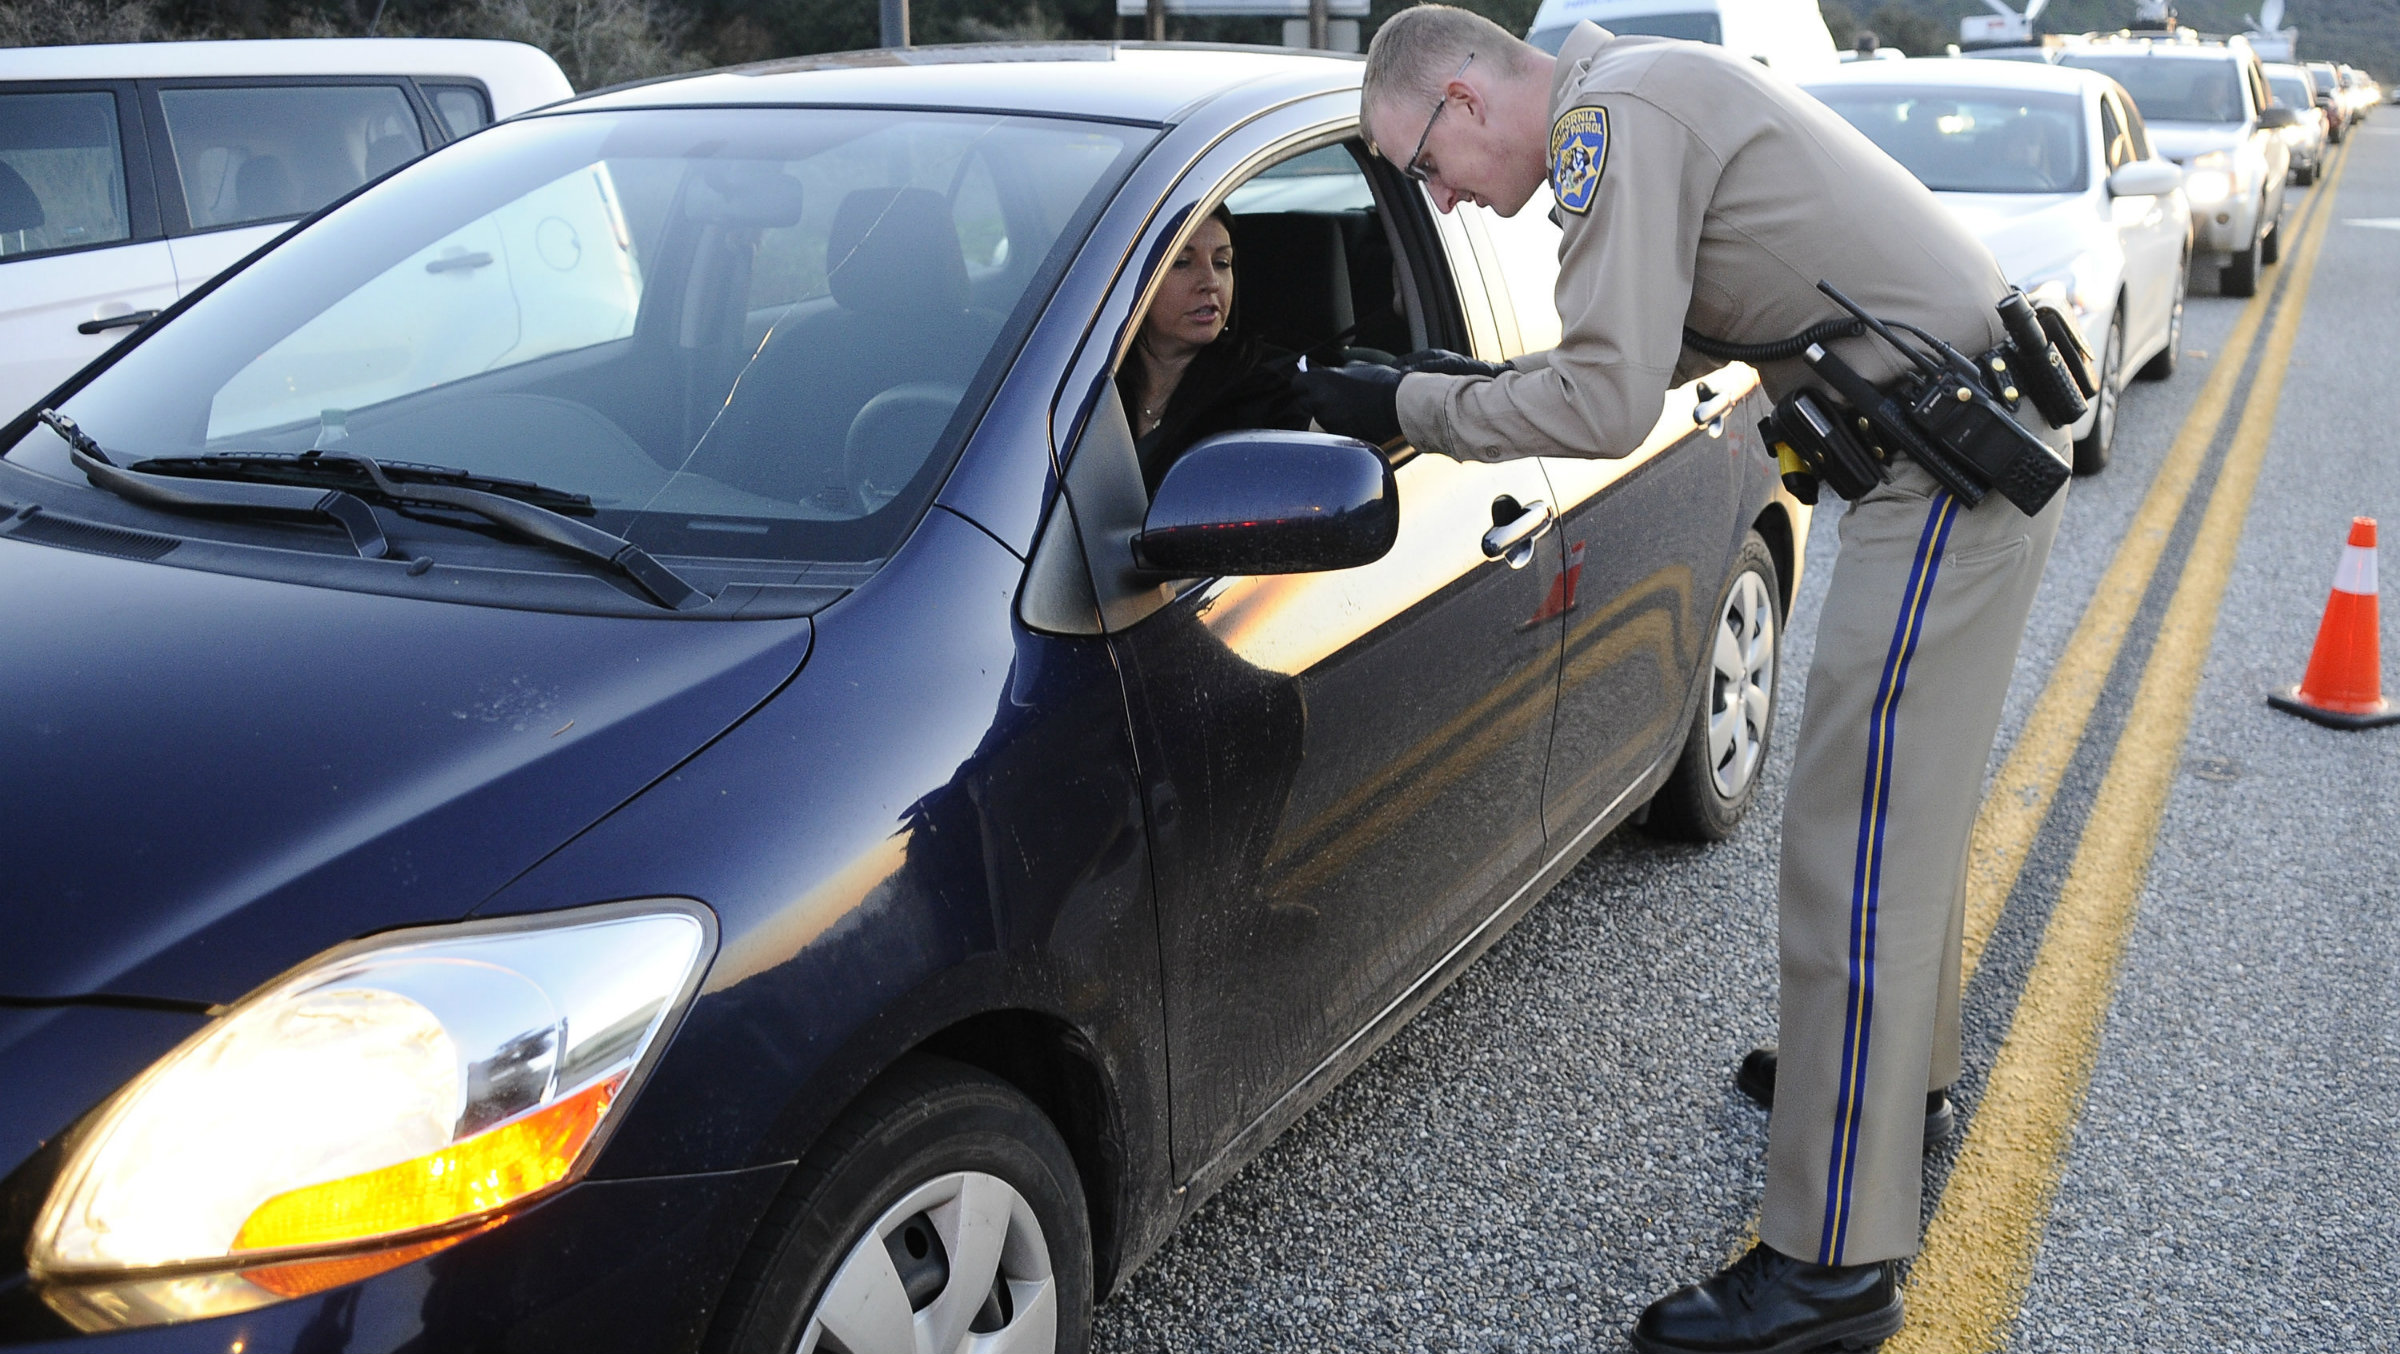 Police checking a driver's license.